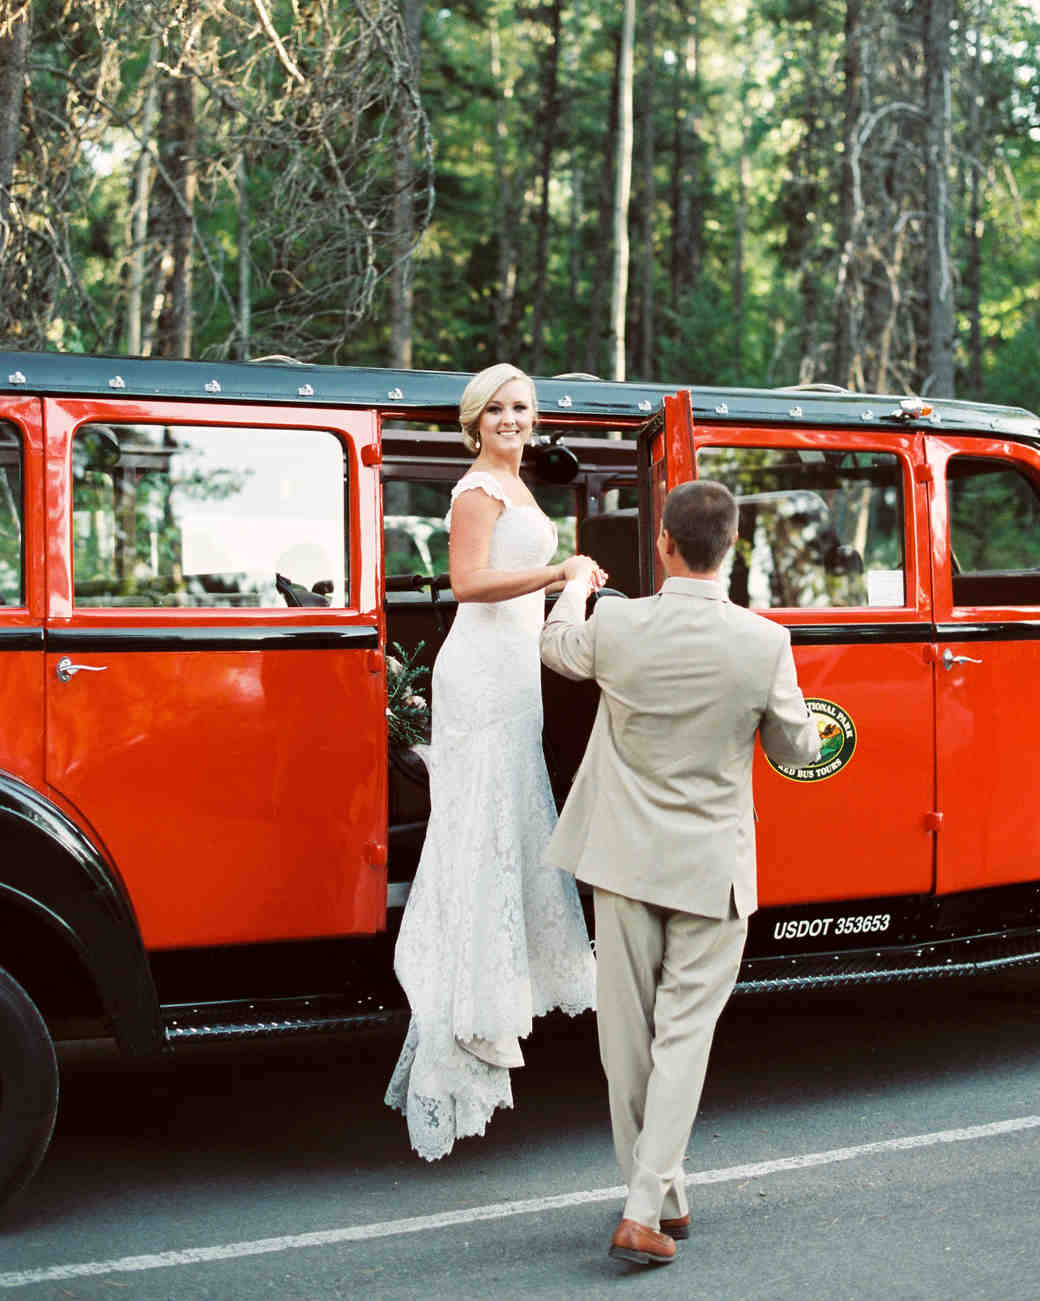 bride and groom getting into a vehicle